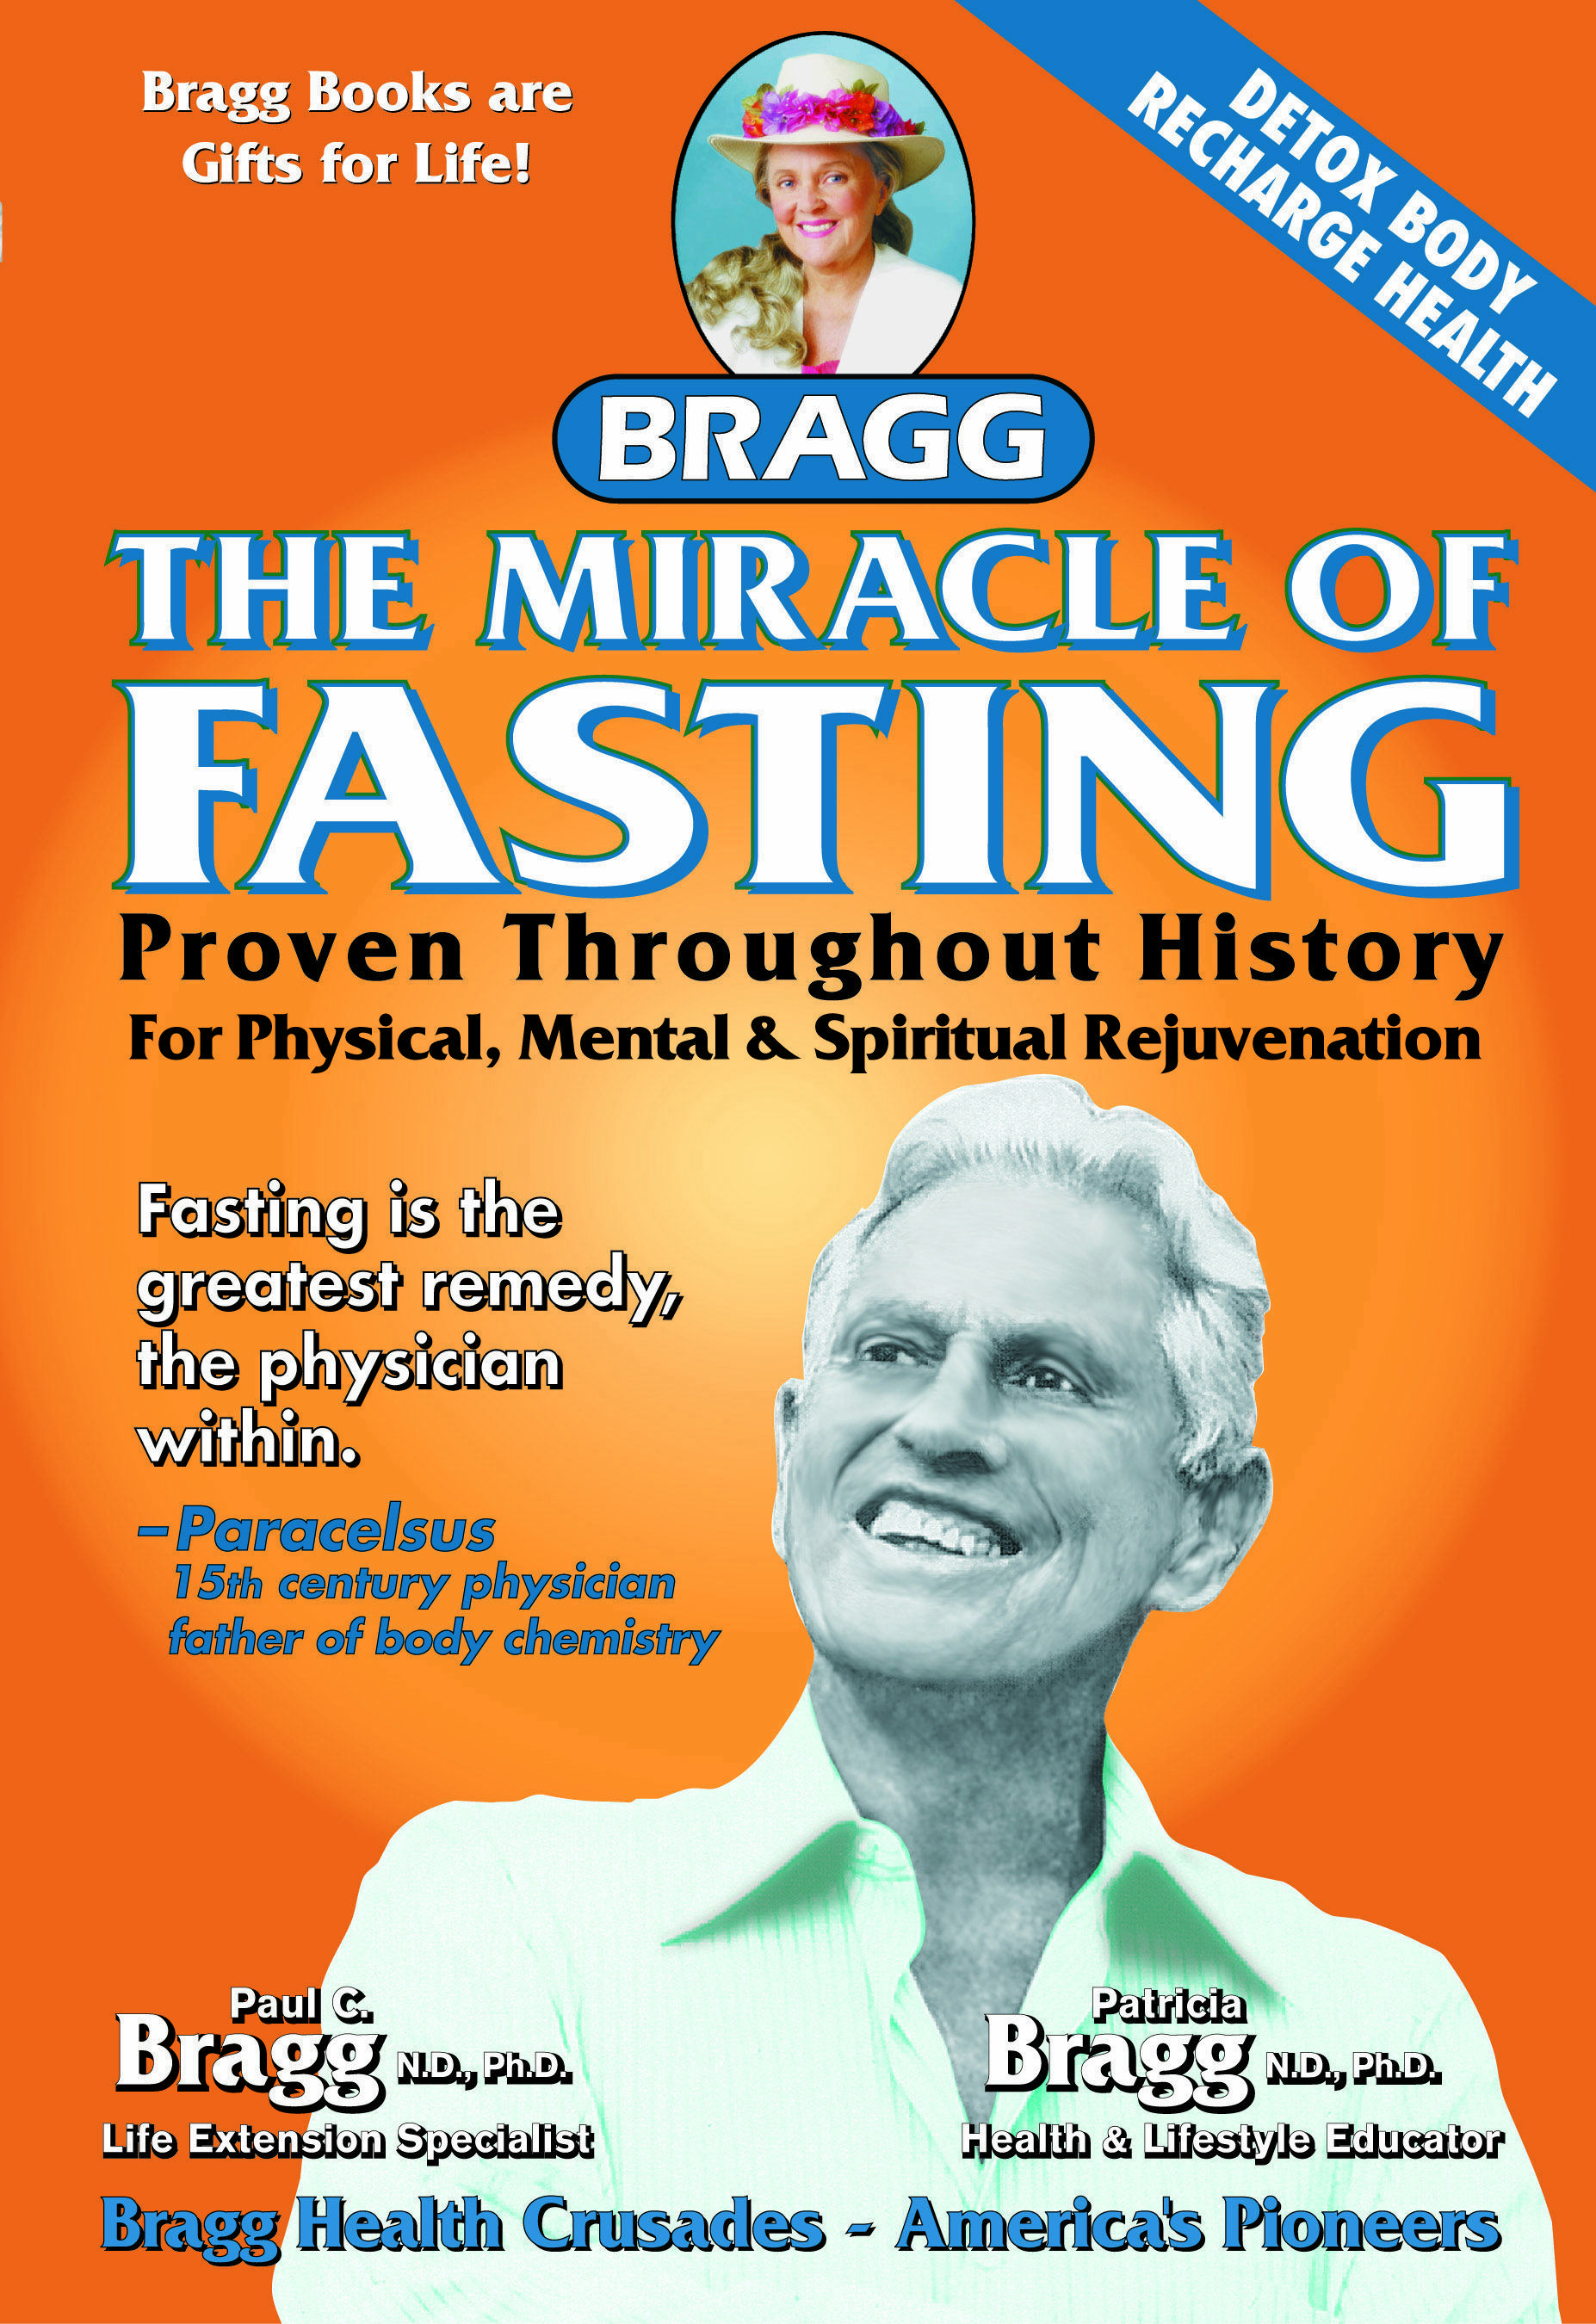 Is fasting good for Bragg